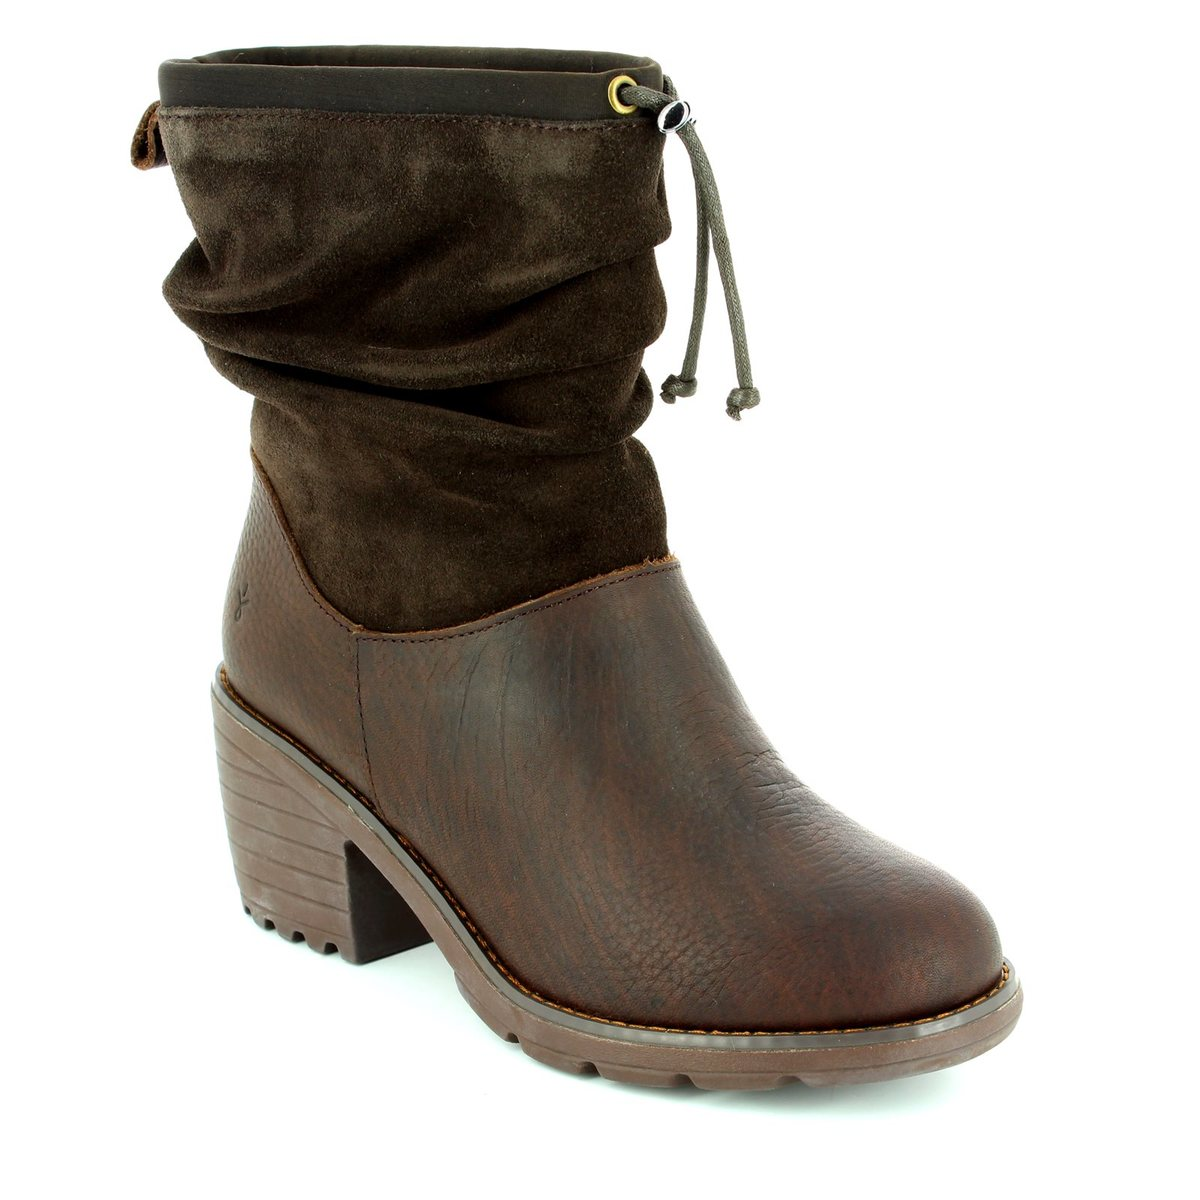 72307110a6 EMU Australia Ankle Boots - Brown - W11138/20 COOMA